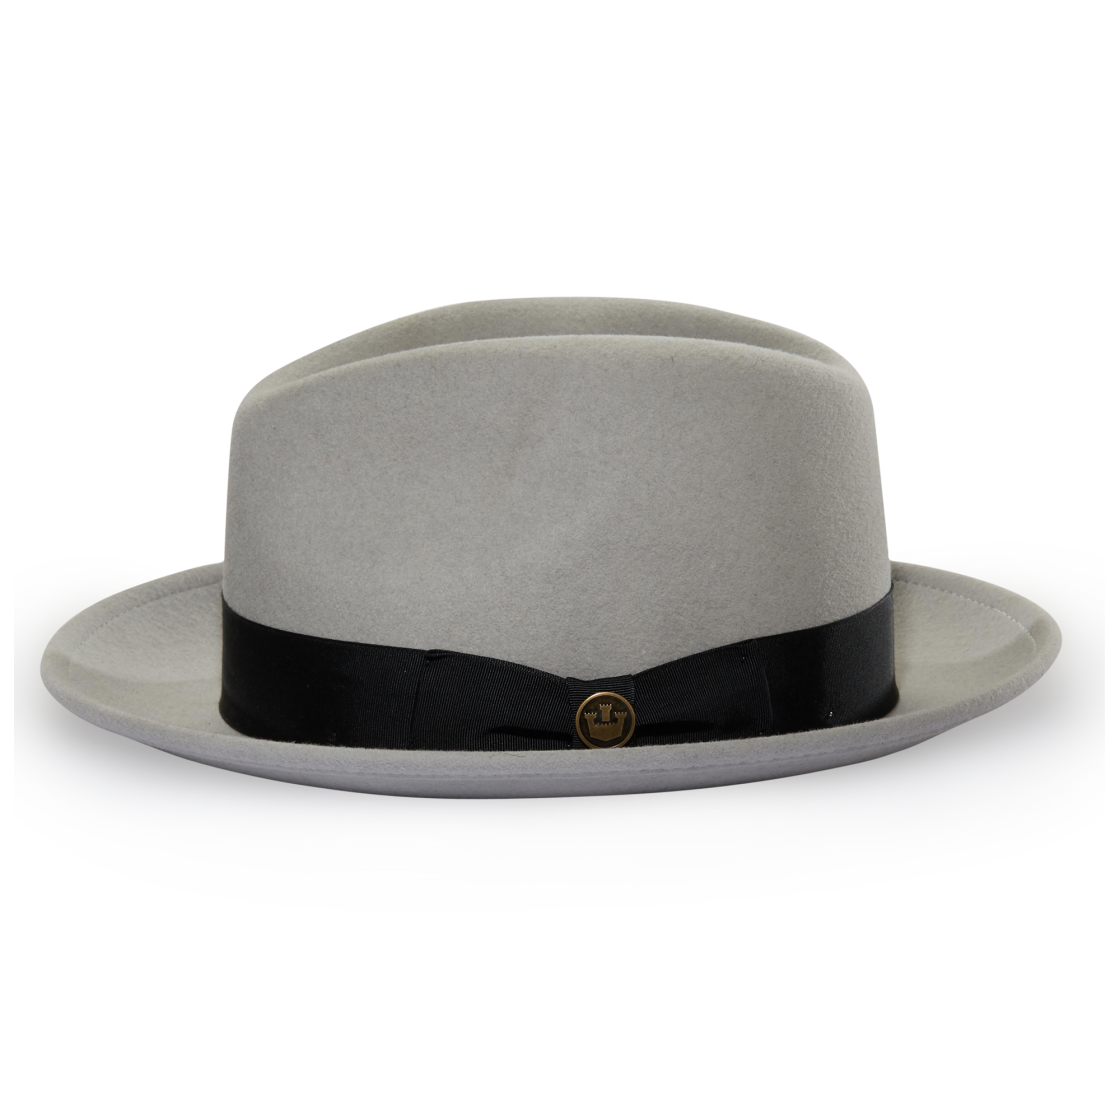 76e04bb9f922e Dean The Butcher Olive felt Wide Brim Fedora hat front view